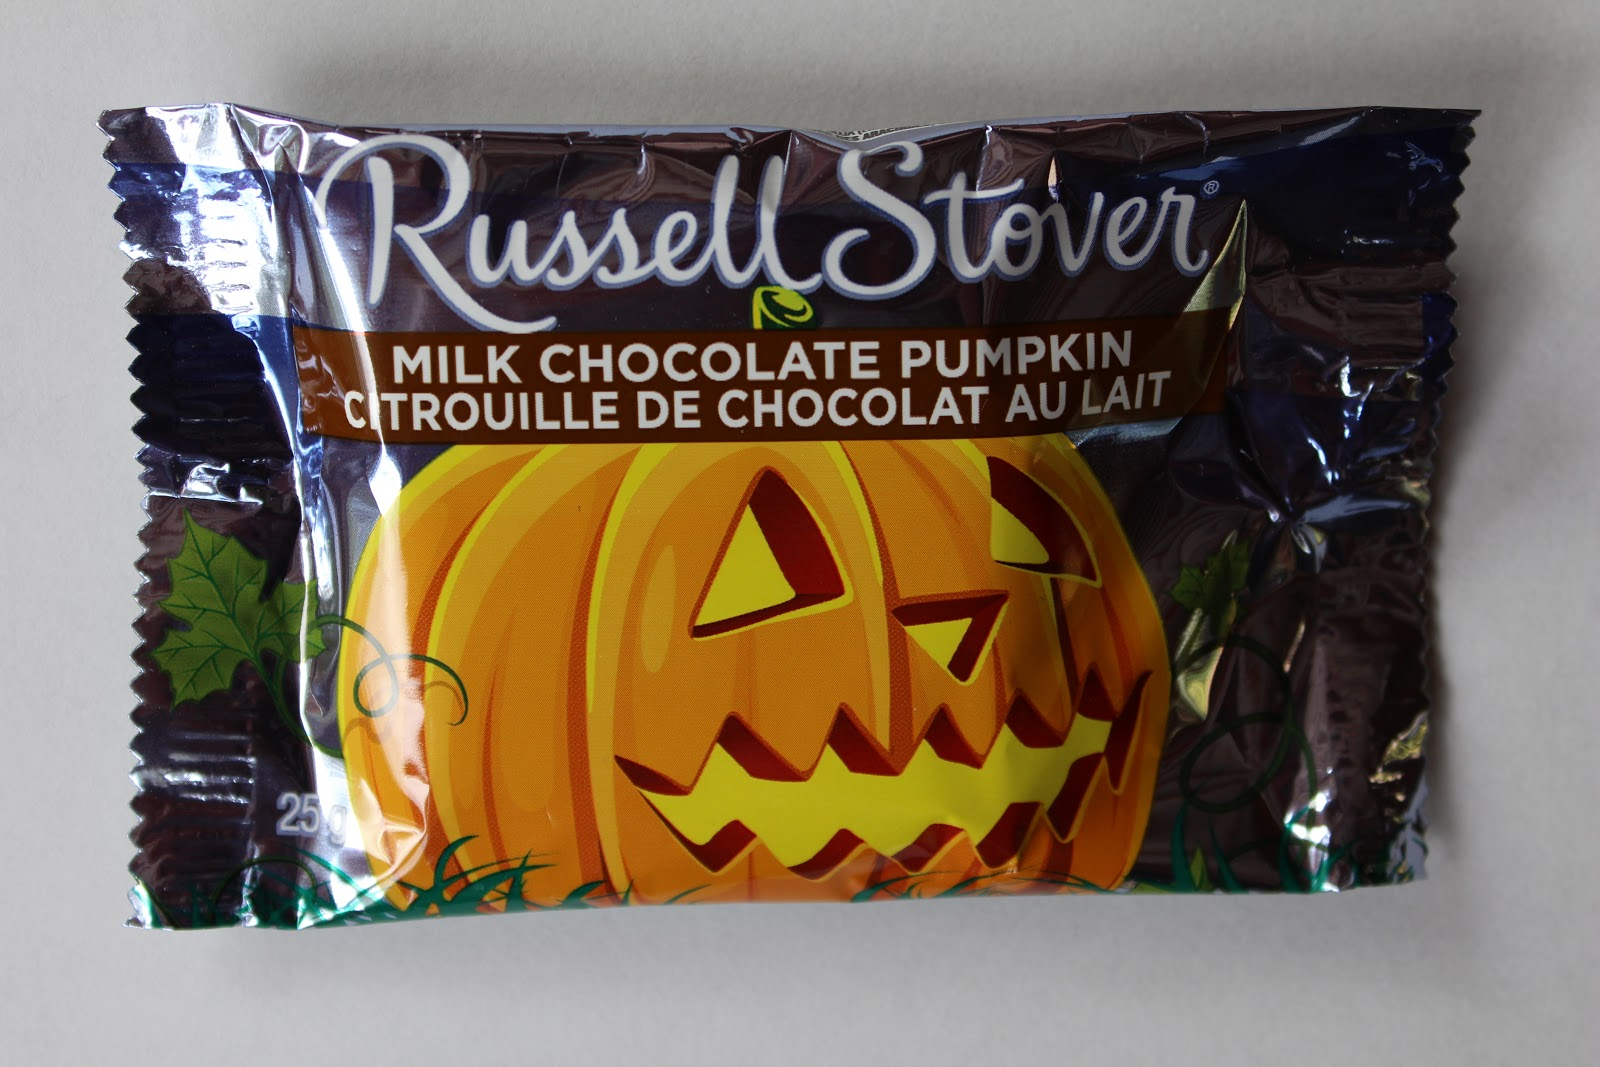 walking the candy aisle: russell stover milk chocolate pumpkin review